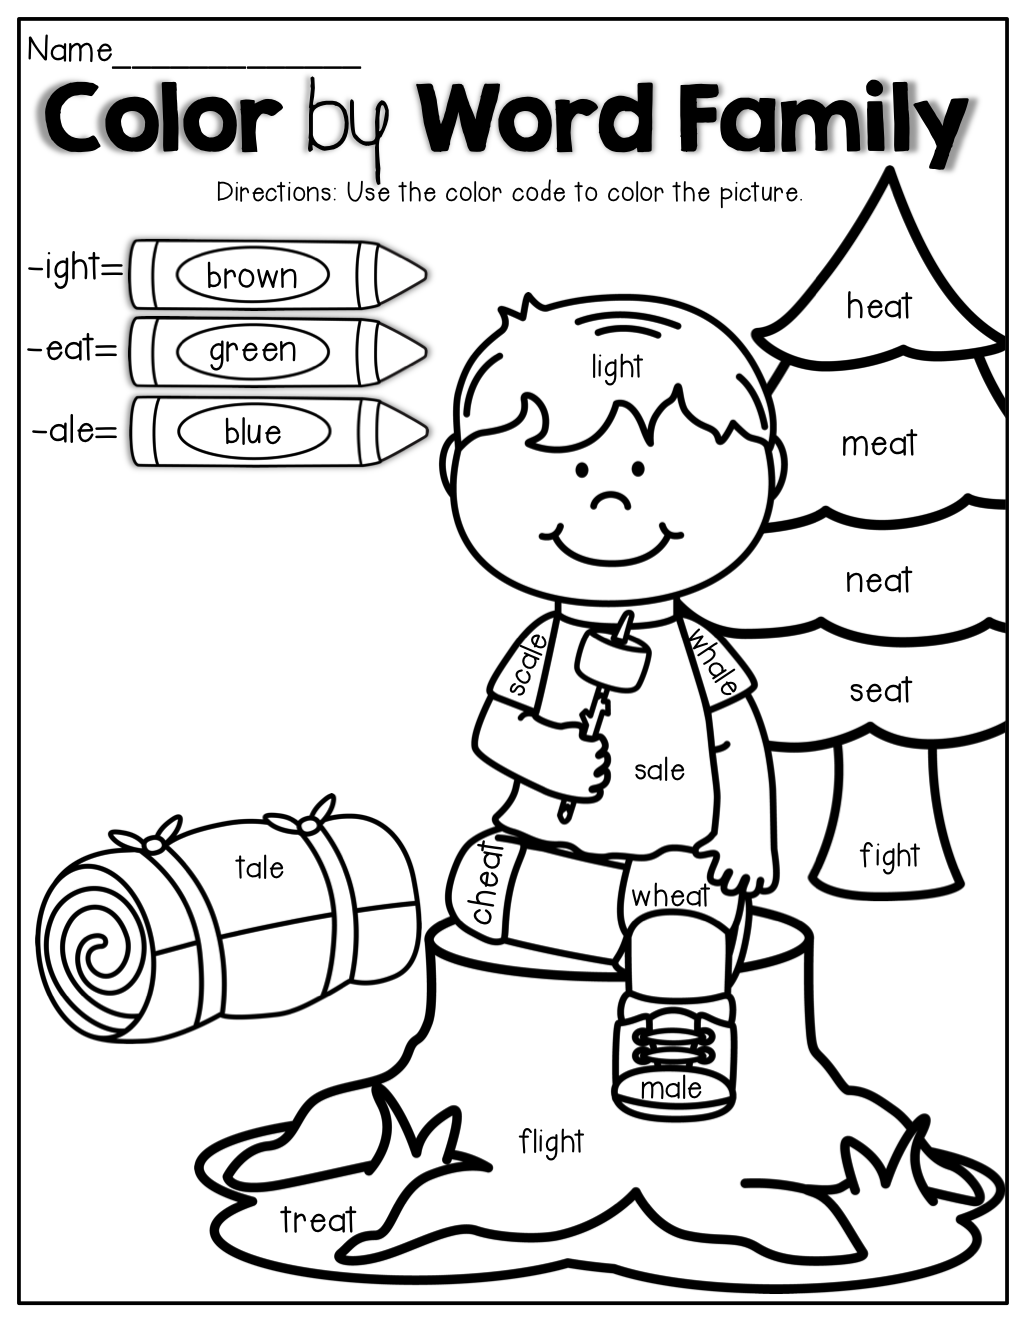 Since kids LOVE to color, this is a GREAT way to make